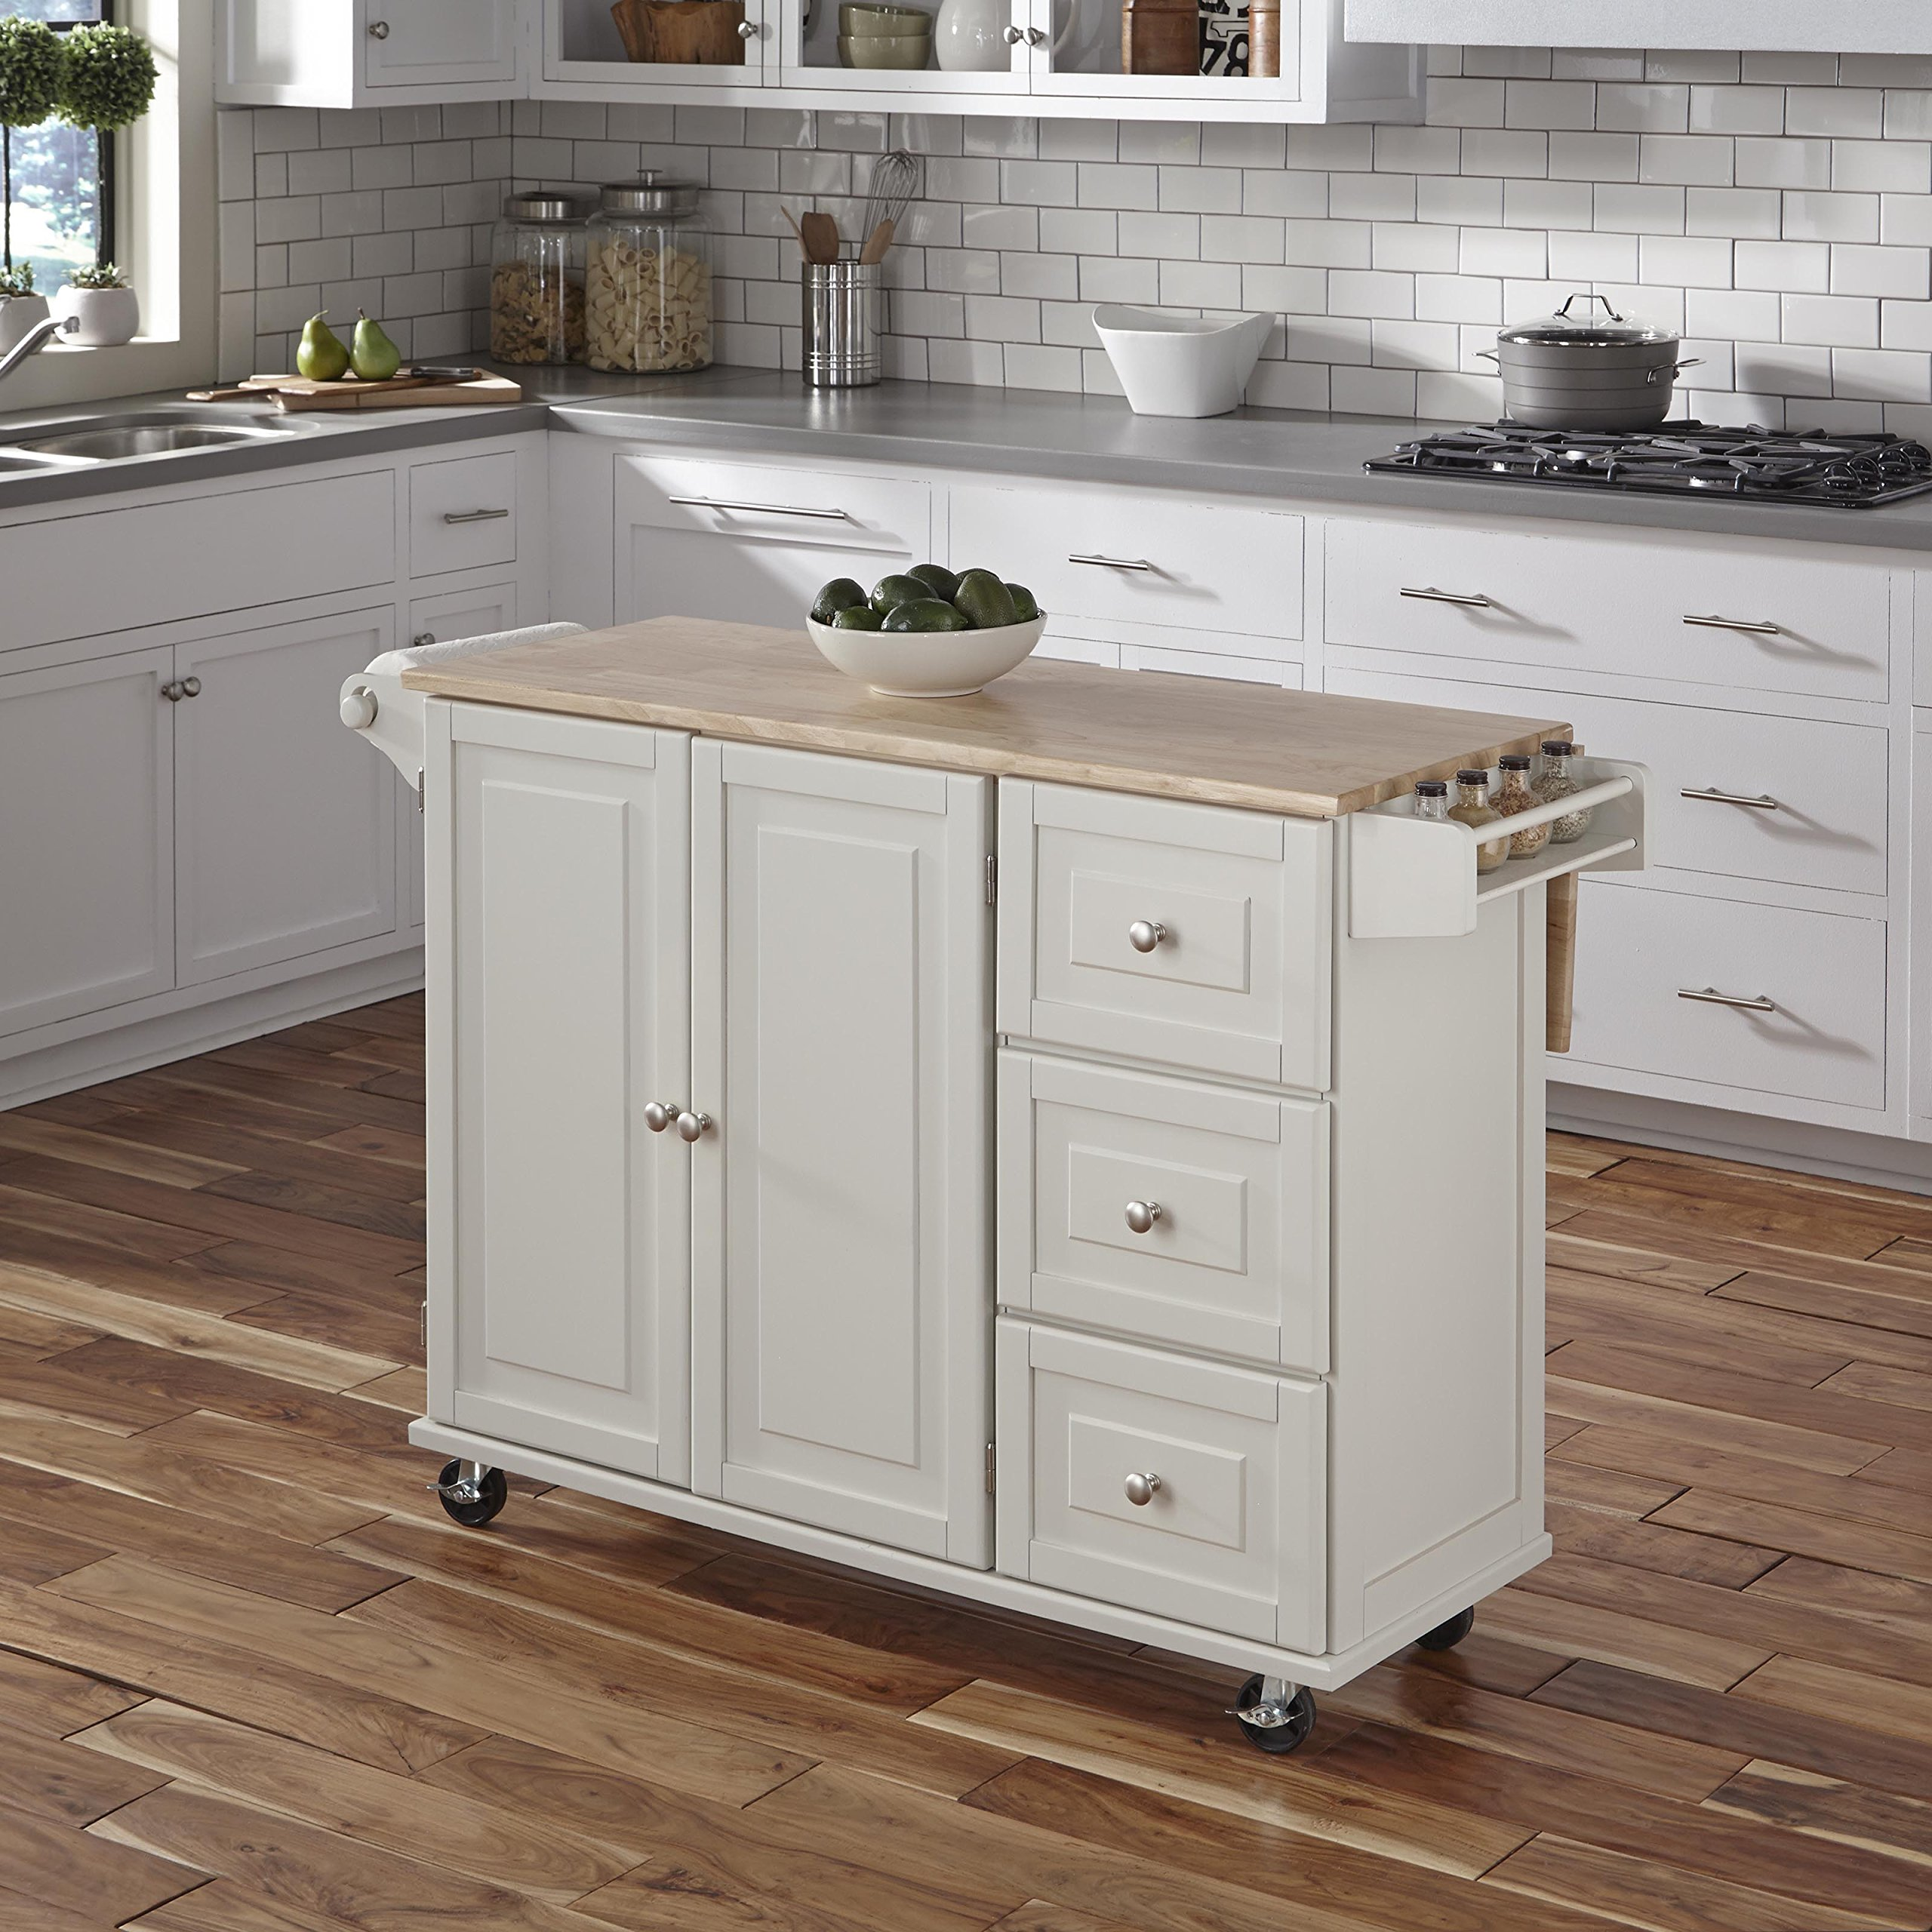 Home Styles 4511-95 Liberty Kitchen Cart with Wood Top, White by Home Styles (Image #1)